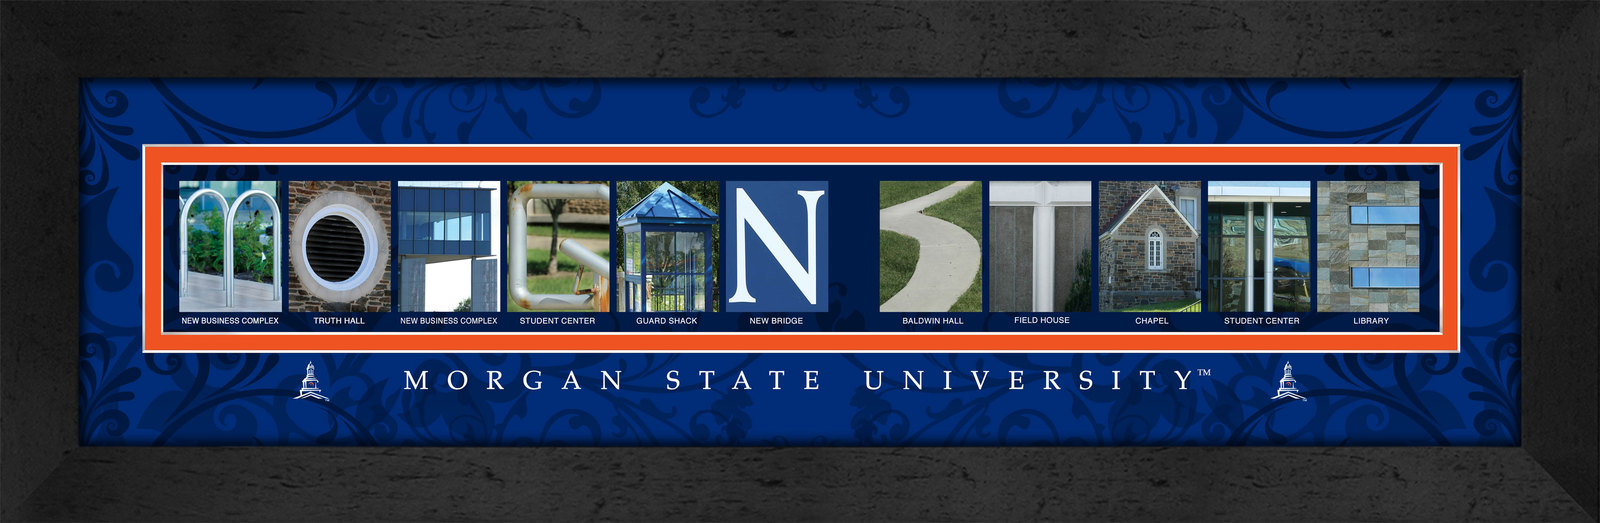 Primary image for Morgan State University Officially Licensed Framed Campus Letter Art